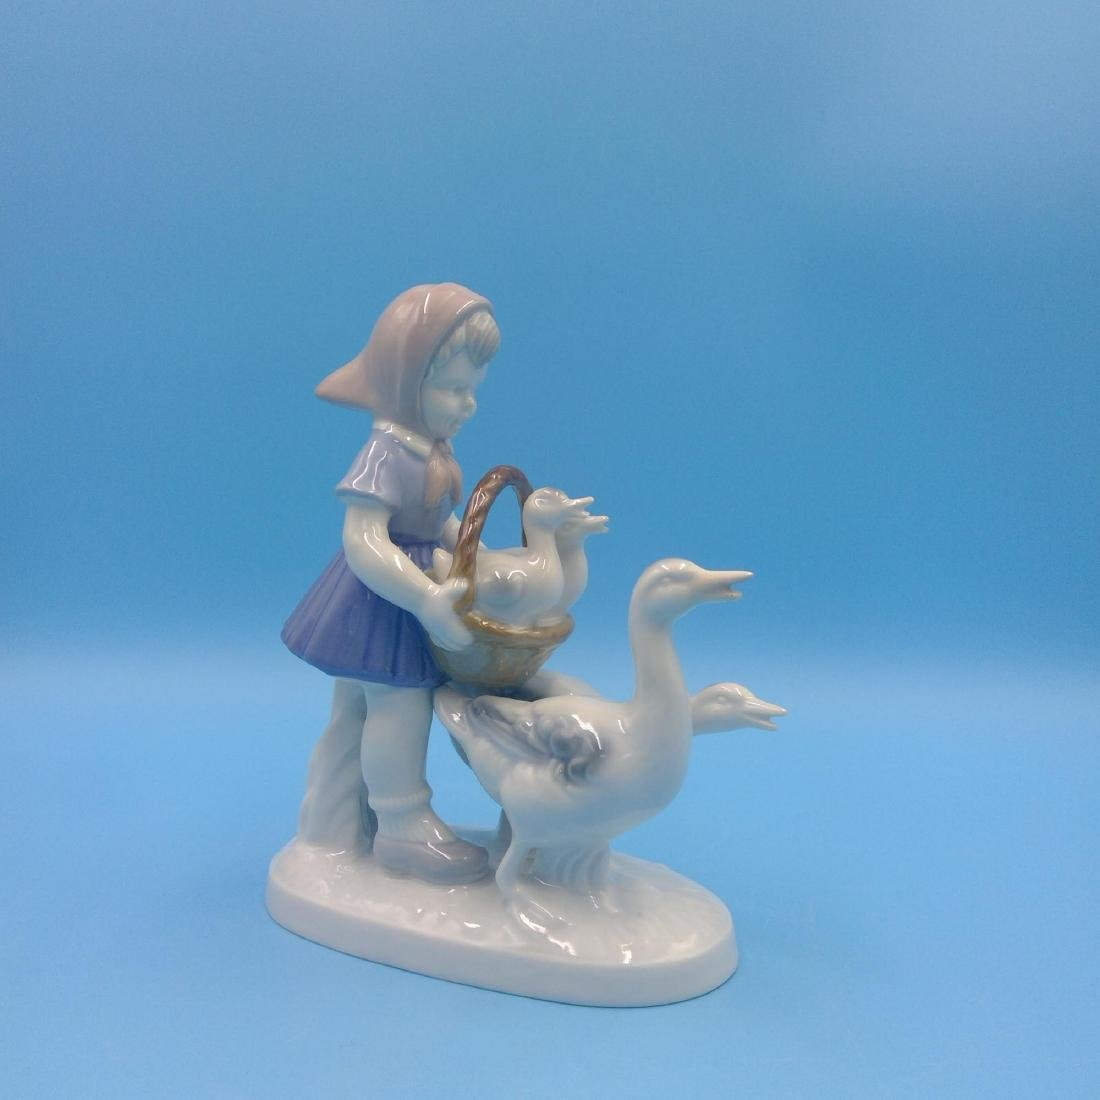 GROUP OF 7 GERMAN PORCELAIN FIGURINES - 8